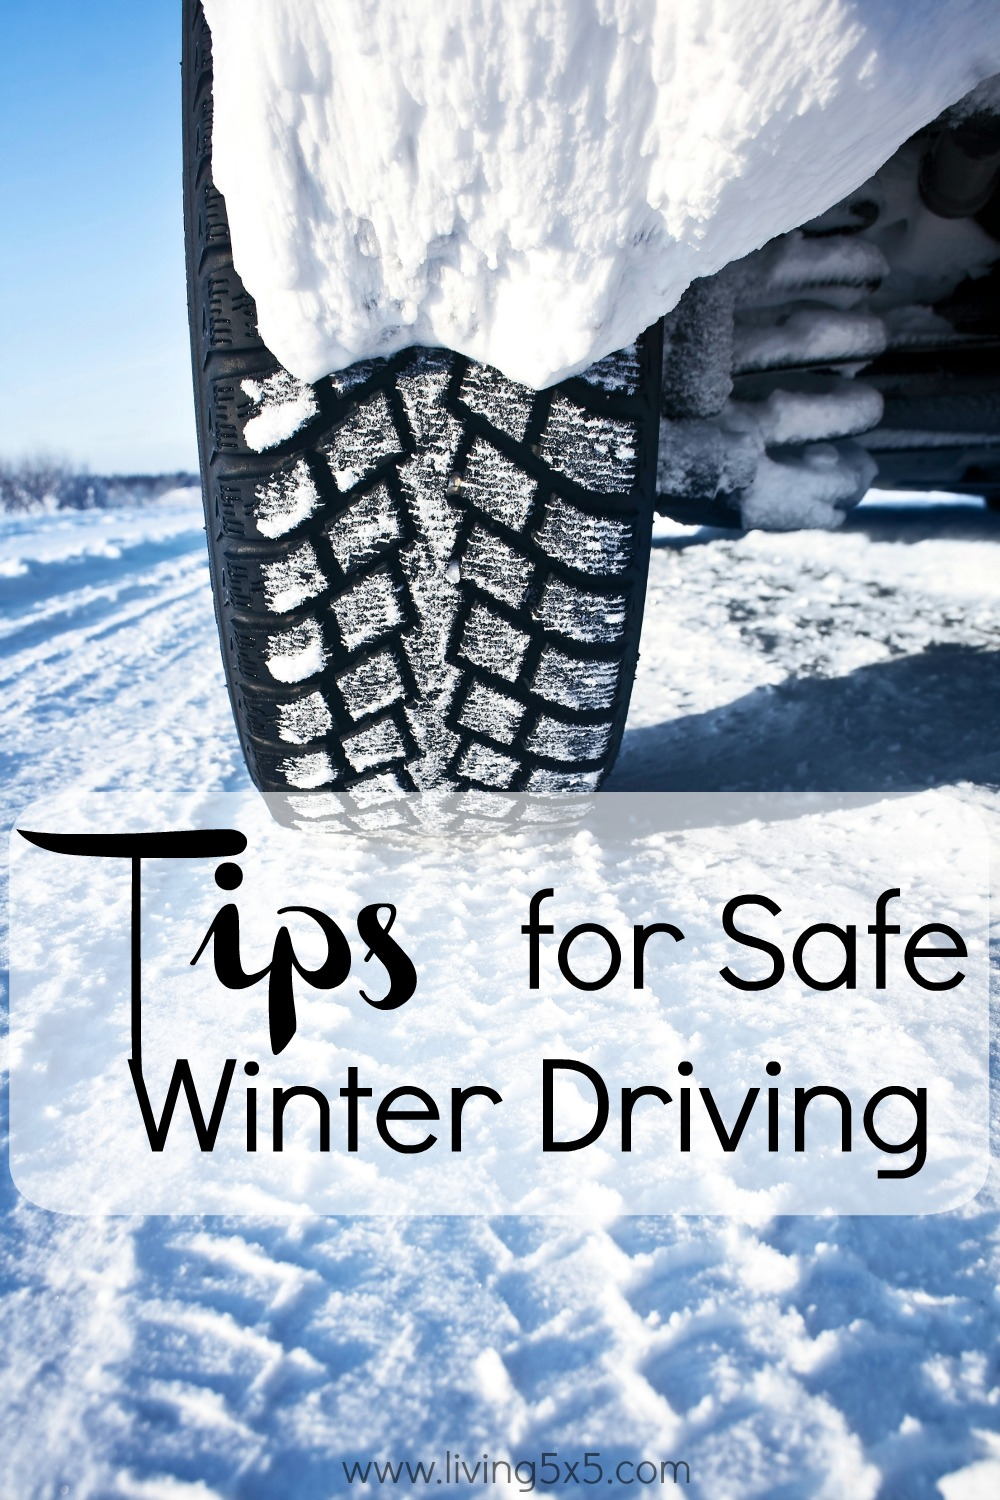 Driving in the wintertime can be daunting. Get some Tips for Safe Winter Driving and feel safe on the road!